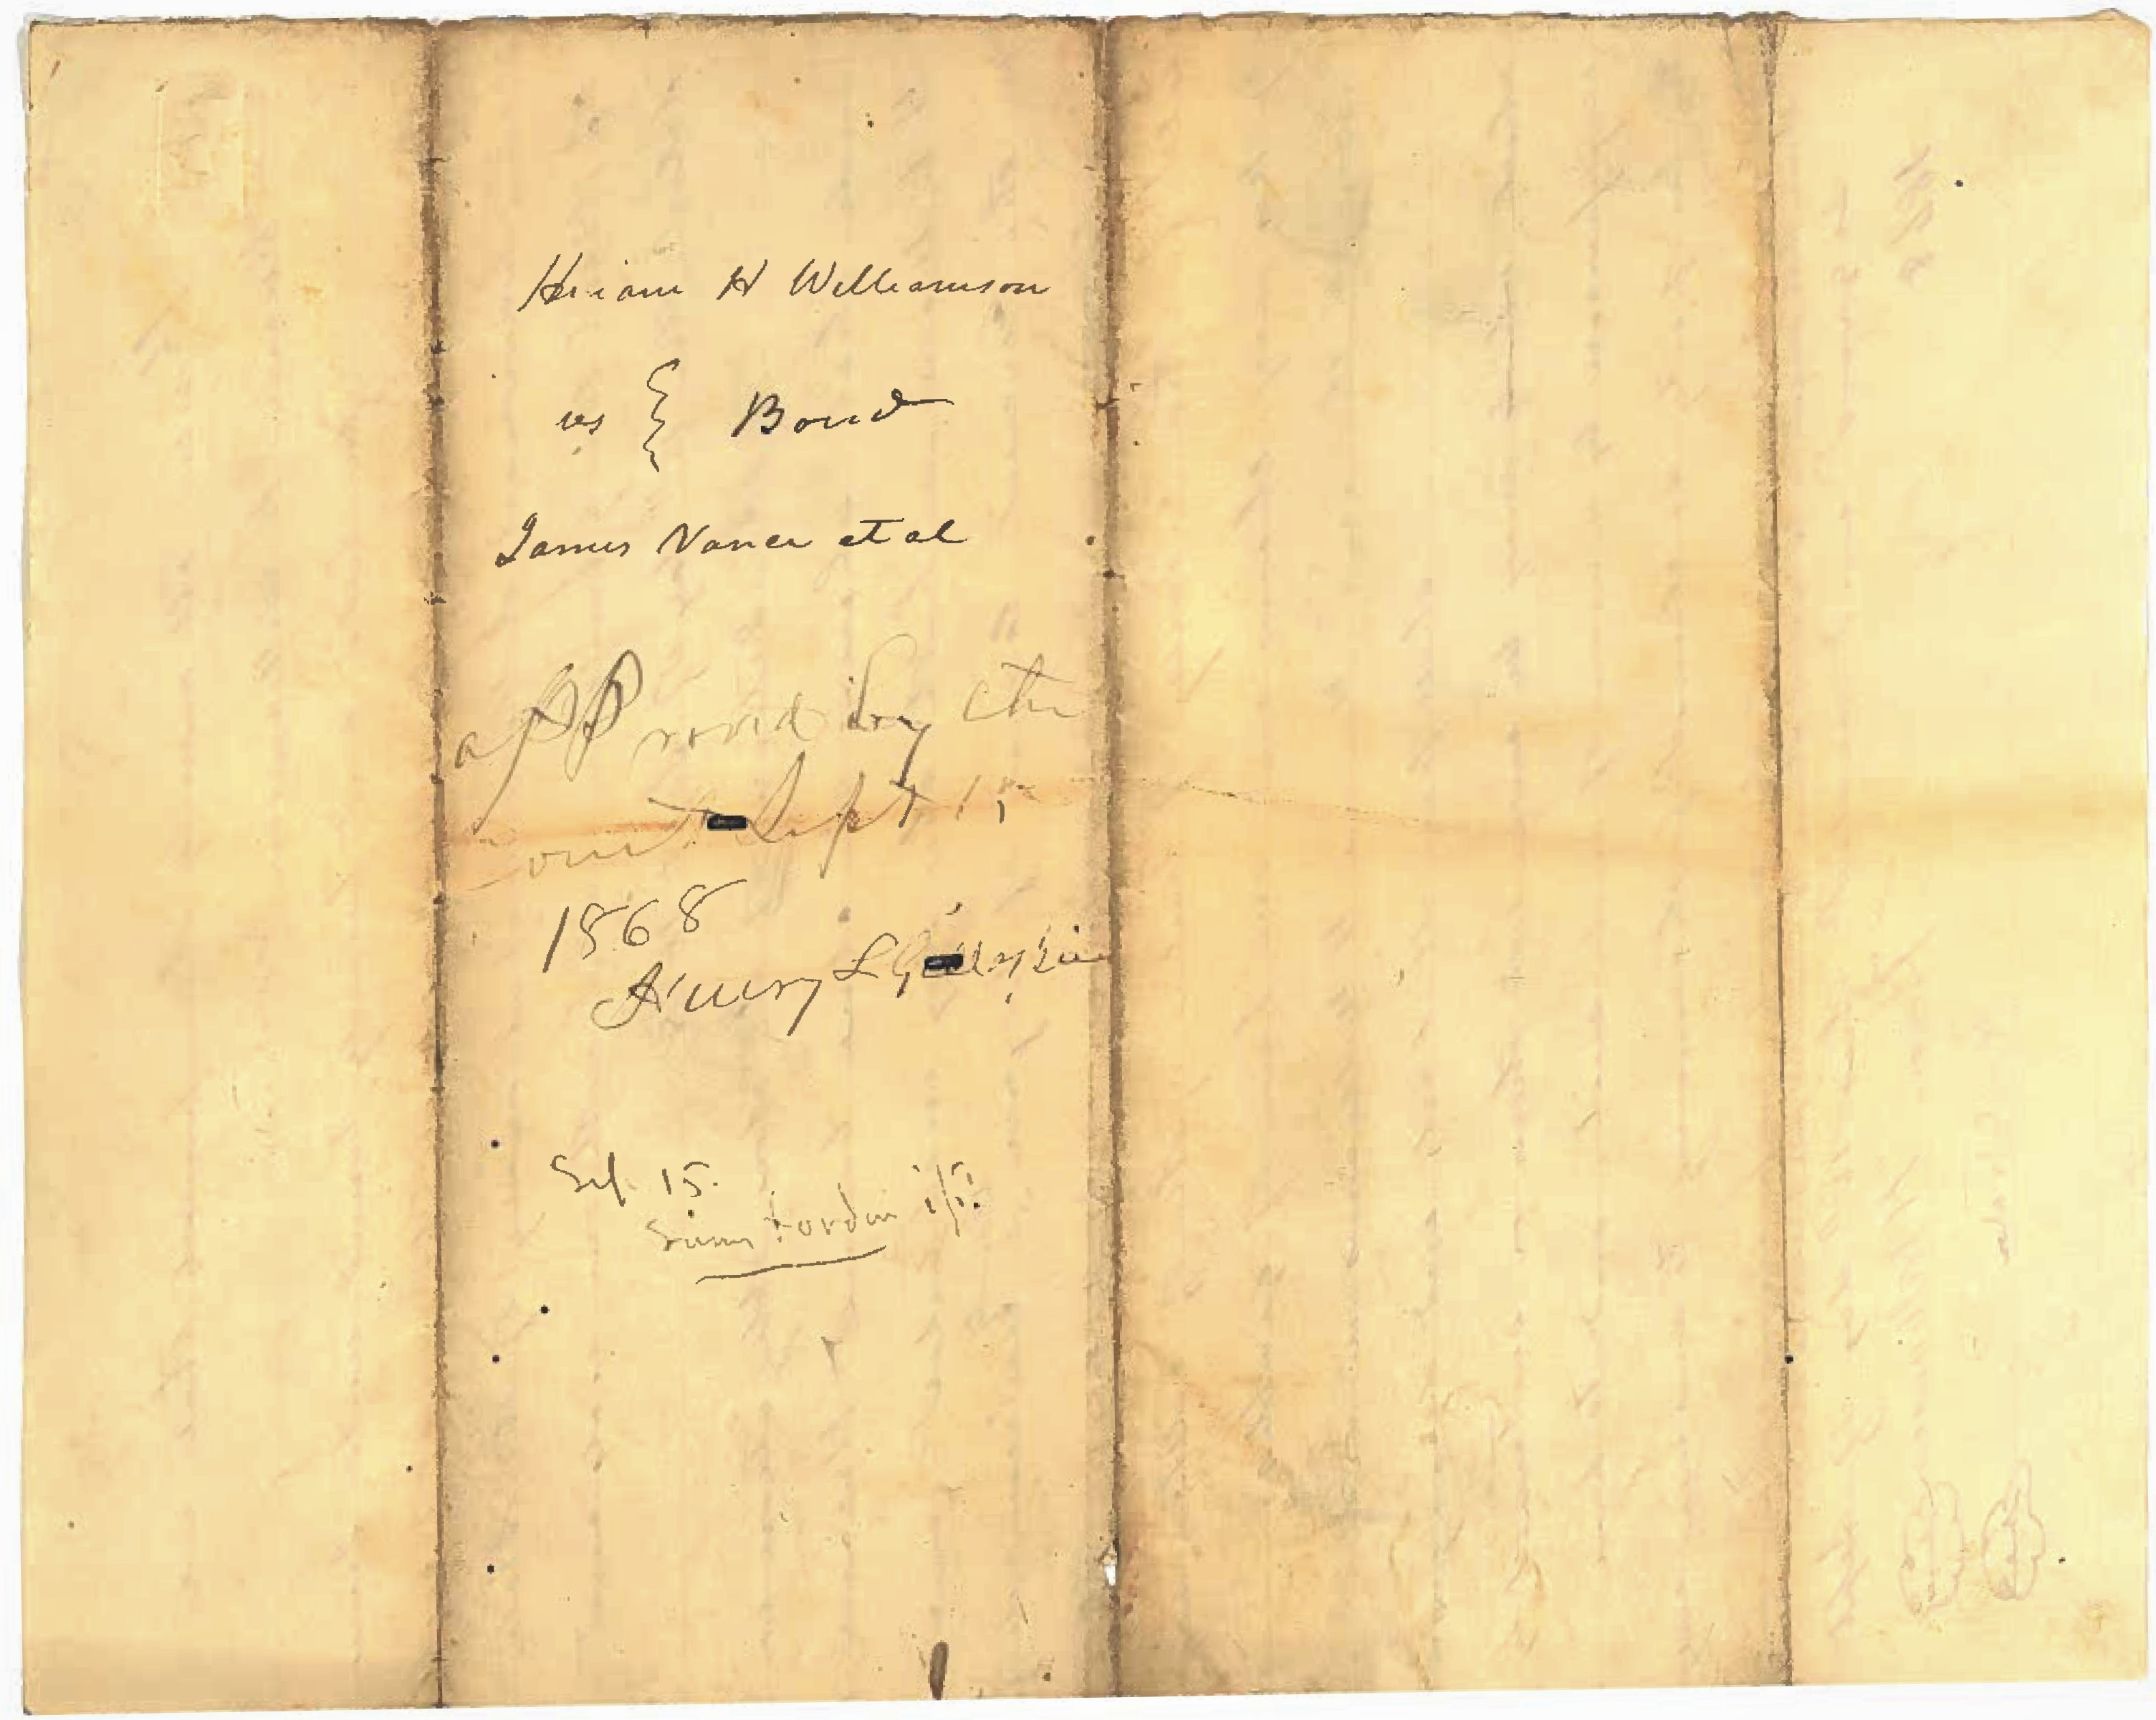 Anderson Hatfield and James Vance Document 1868 2